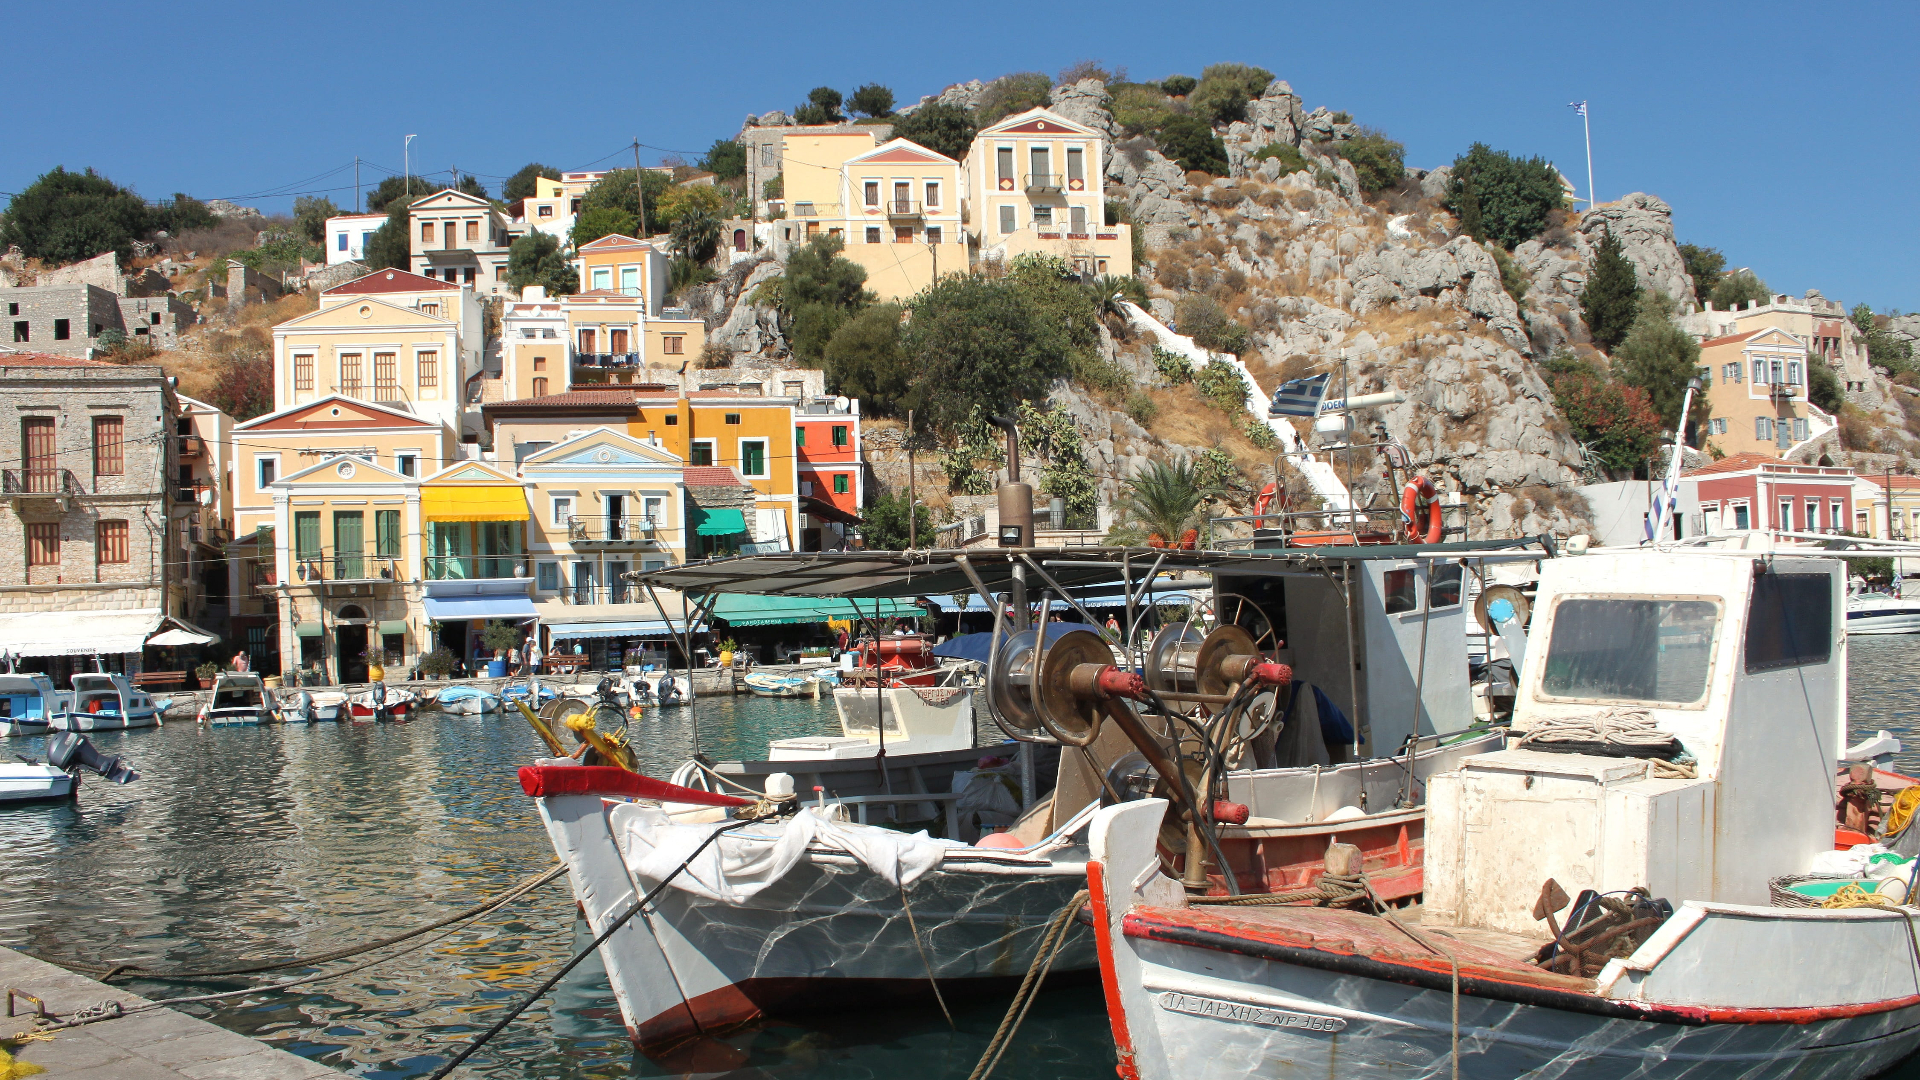 Rhodes Island Tourism: History, Geography, Places to Visit, Best Beaches in Rhodes Island (2020)